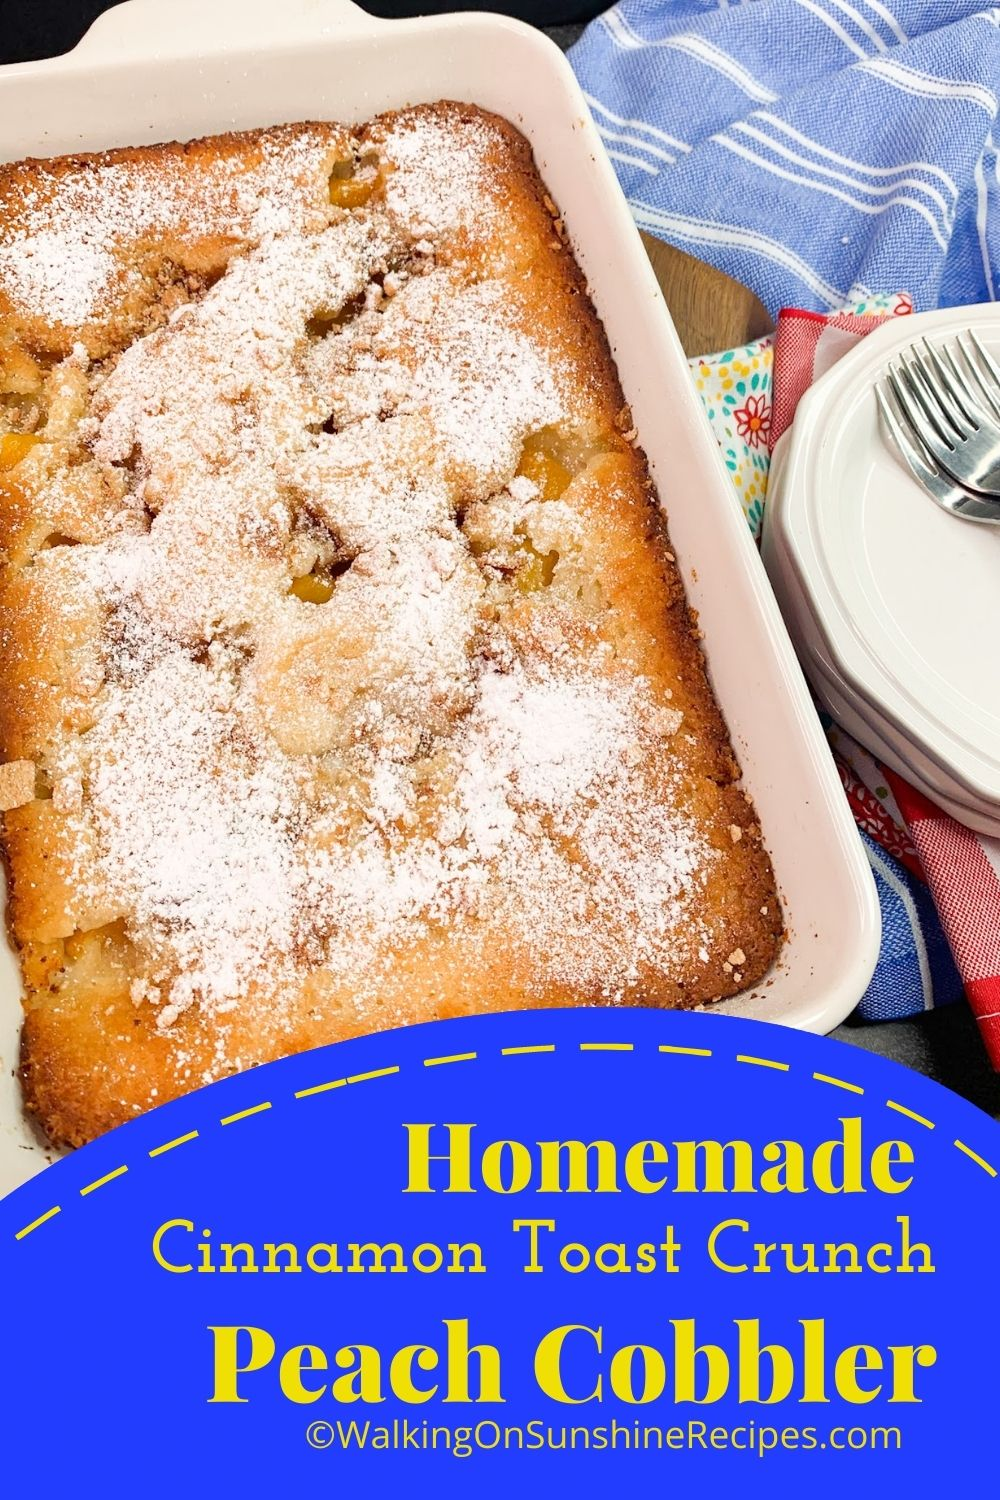 Baked Peach Cobbler with powdered sugar.